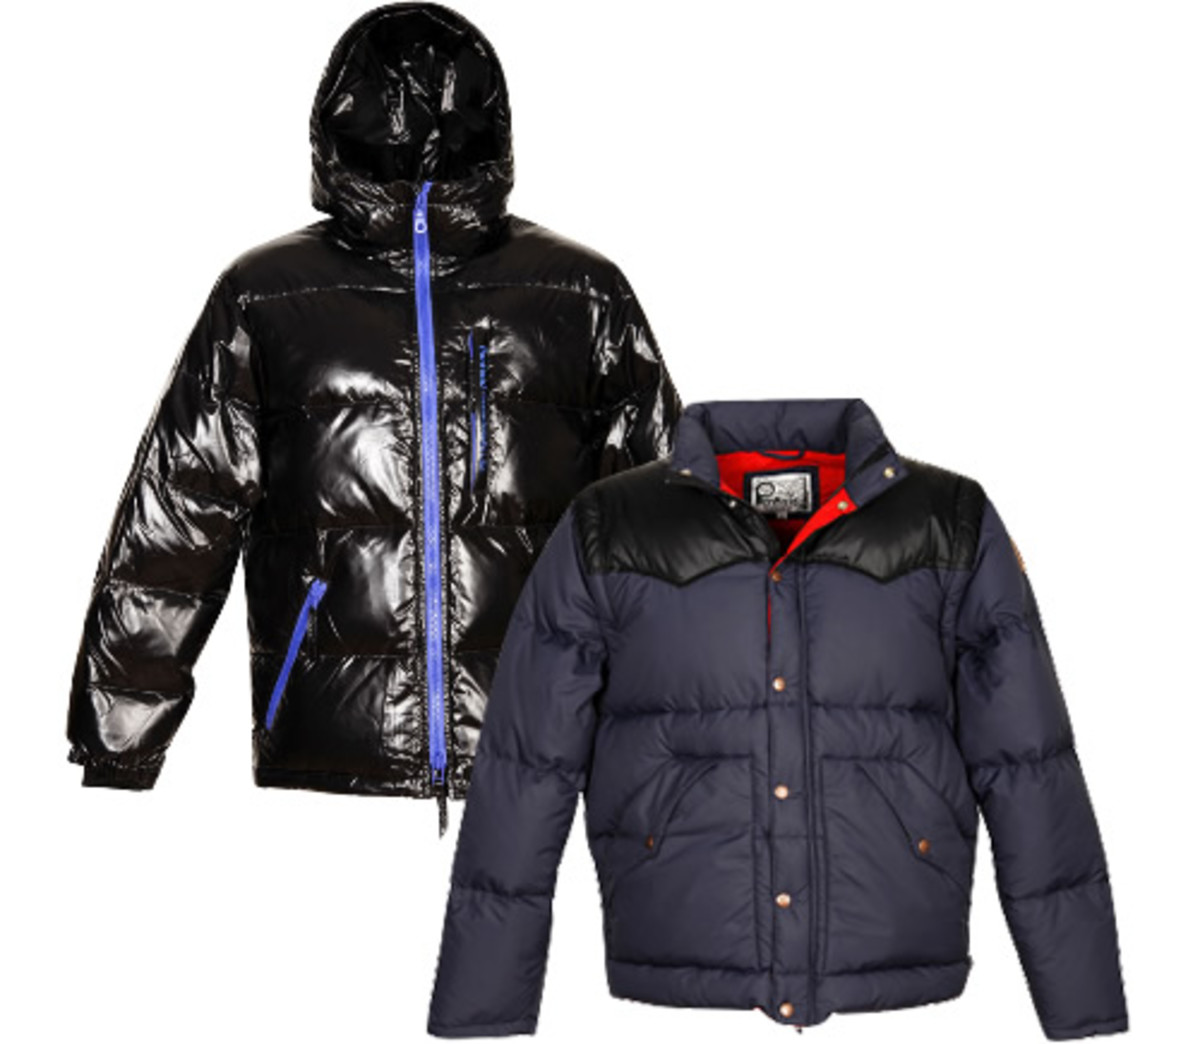 penfield09